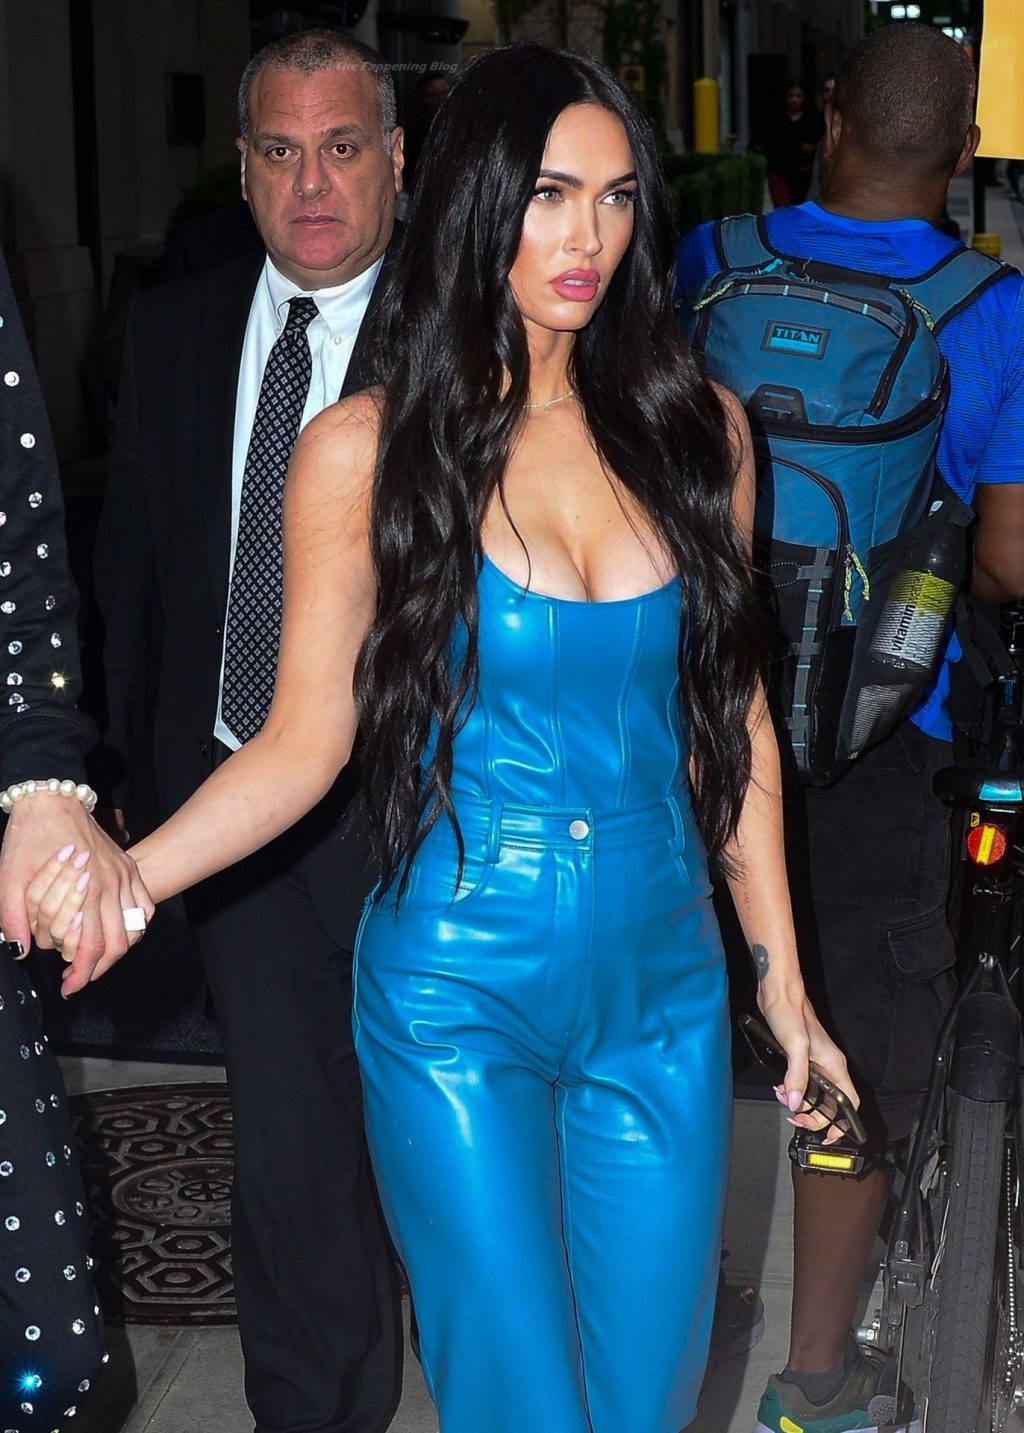 Megan Fox & Machine Gun Kelly Hold Hands Heading Out in the Big Apple (7 Photos)